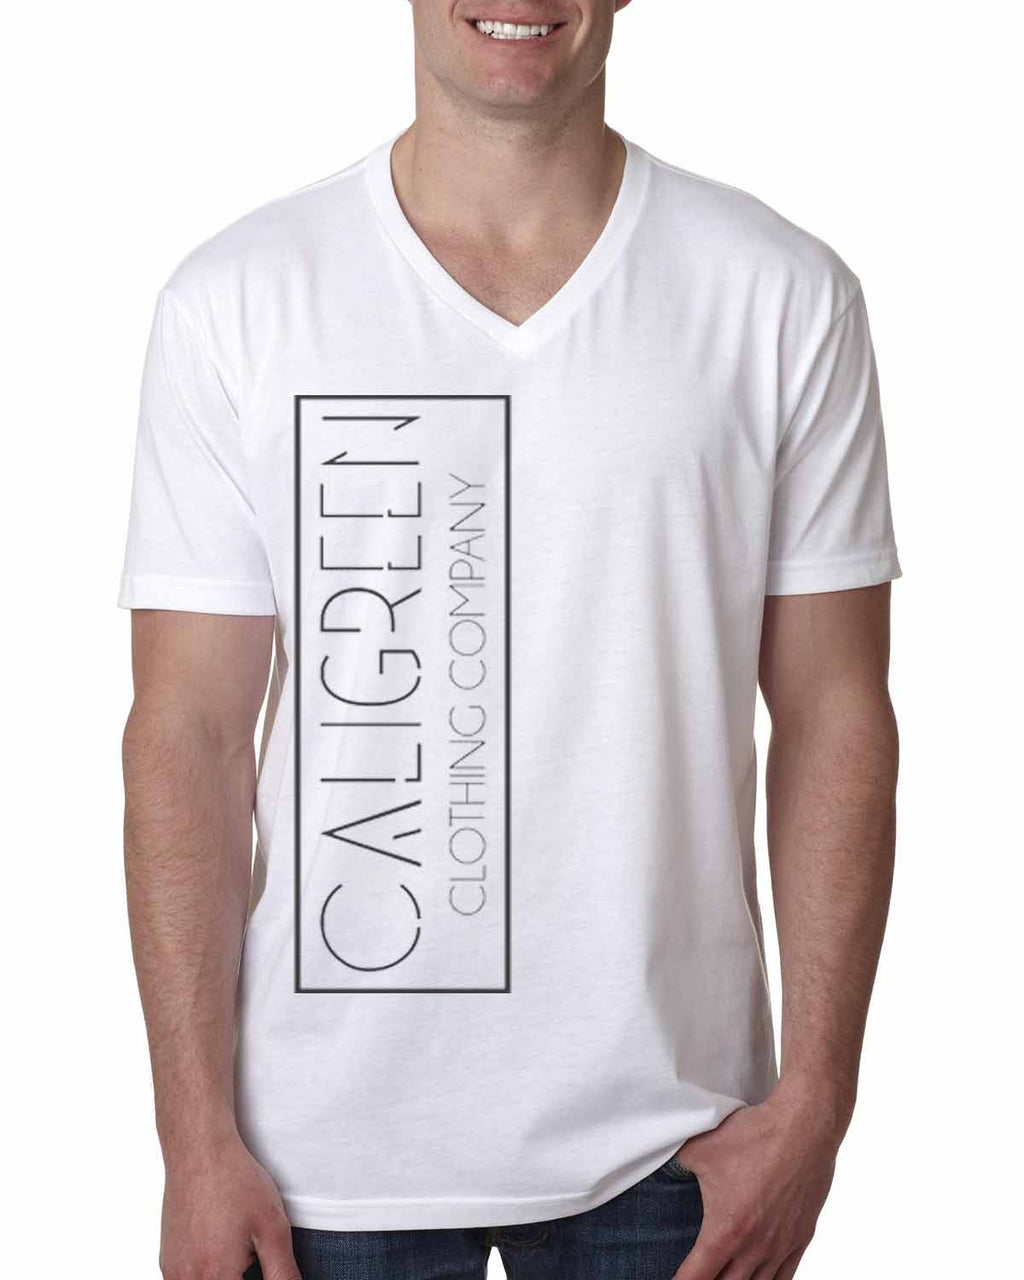 Caligreen Classic V-Neck White